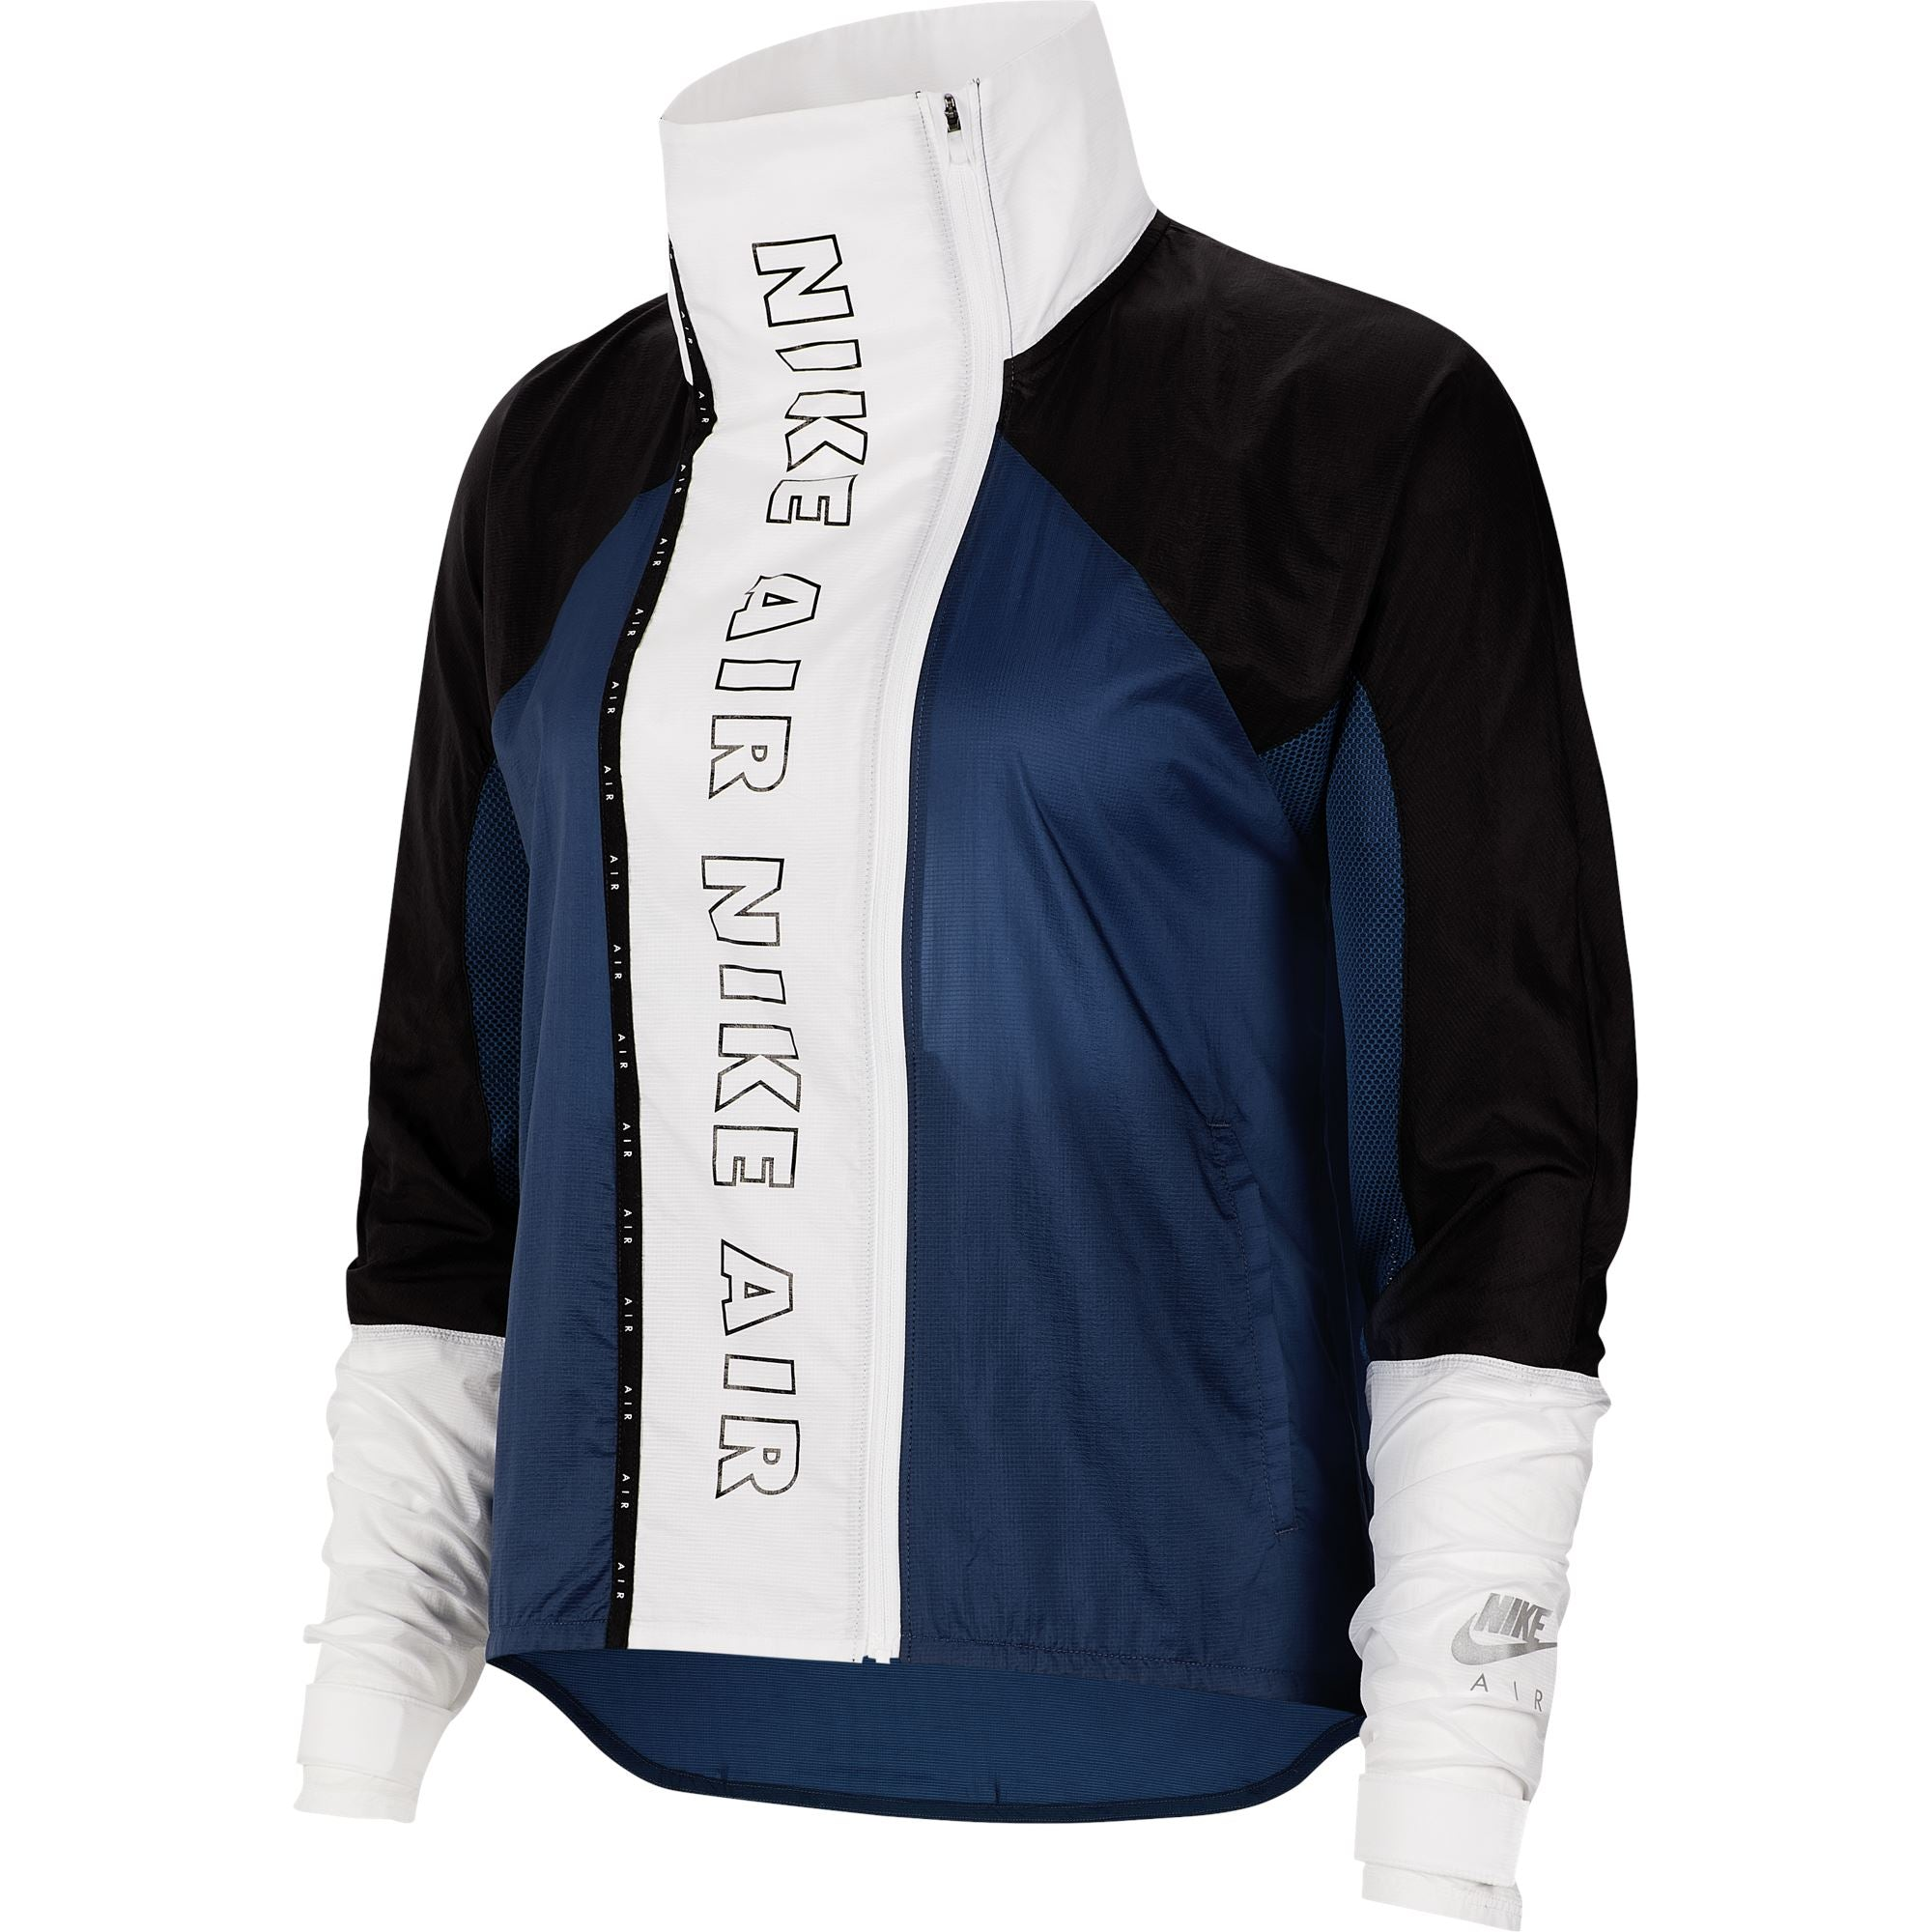 Nike Air Womens Full-Zip Running Jacket - Valerian Blue/Black/White/Black SP-ApparelJacket-Womens Nike